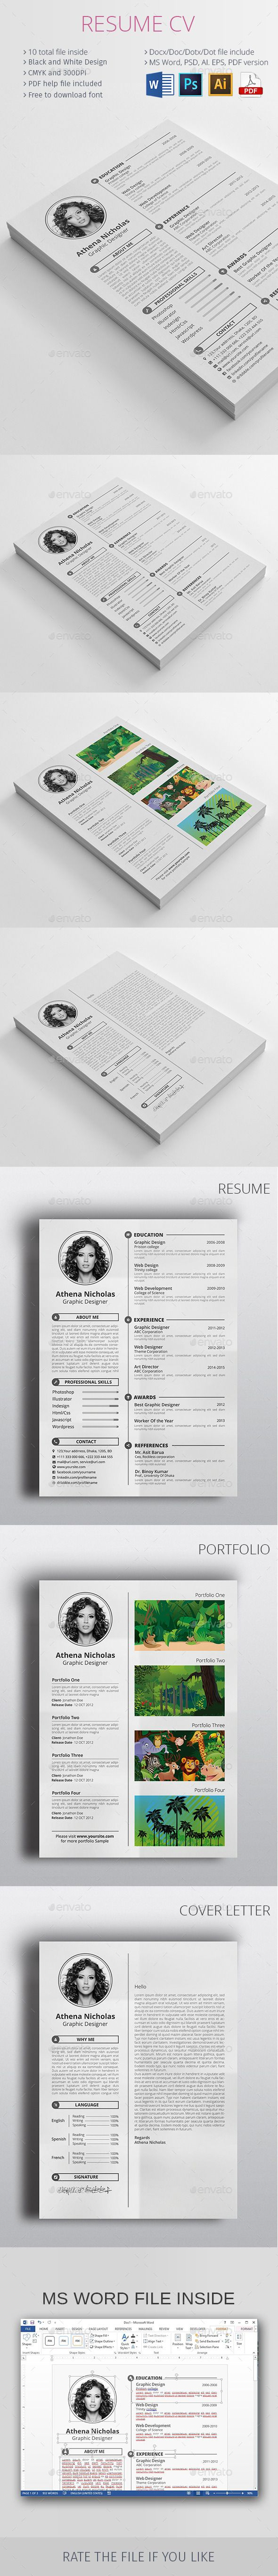 best images about portfolios infographic resume resume cv